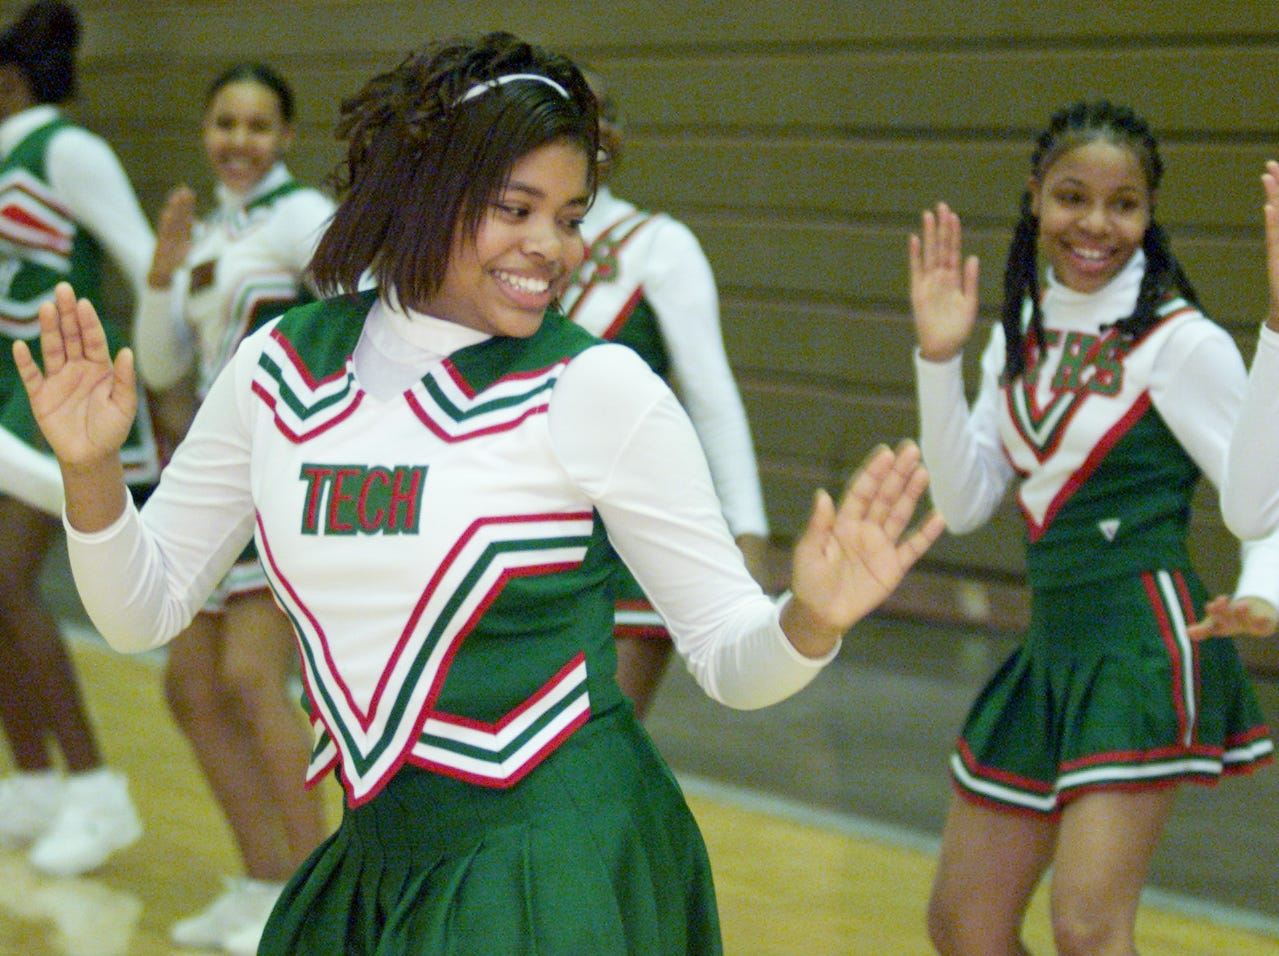 Sharonda Hadnott, 14, center foreground, of Arsenal Technical High School leads her fellow Titan cheerleaders in a routine during the PeyBack Classic II at the school's West gymnasium on Tuesday, December 11, 2001.